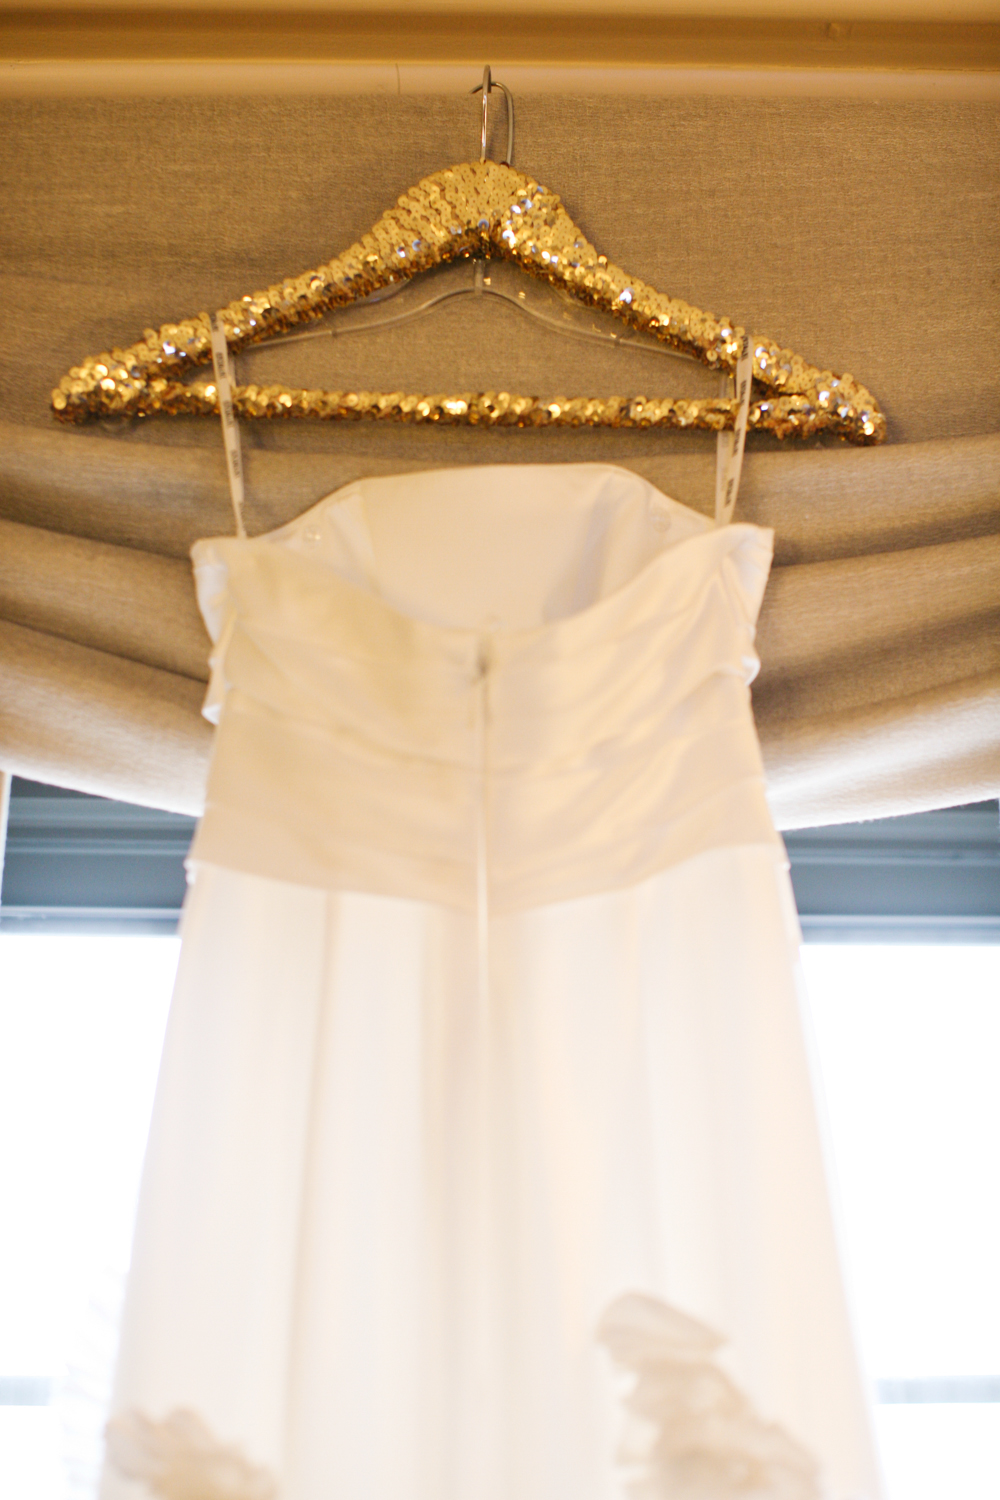 gold glitter wedding dress hanger glitter wedding dress Gold Glitter Wedding Dress Hanger Elizabeth Anne Designs The Wedding Blog